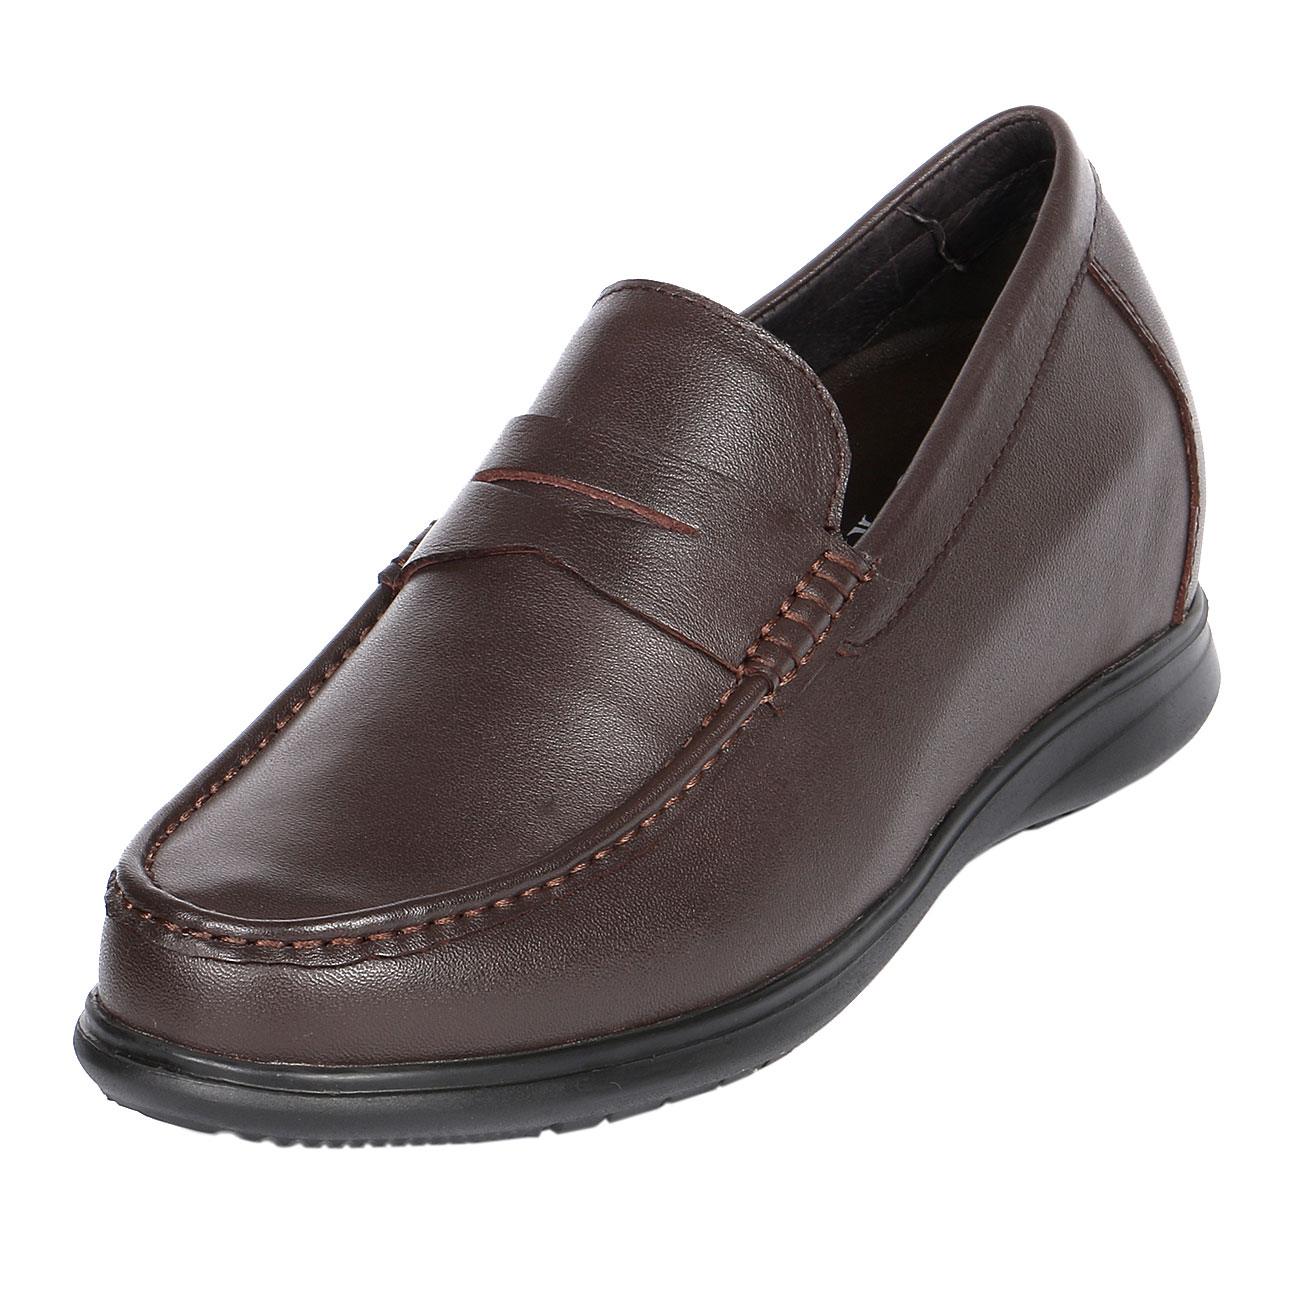 Penny Leather Loafer Moccasin 2.8